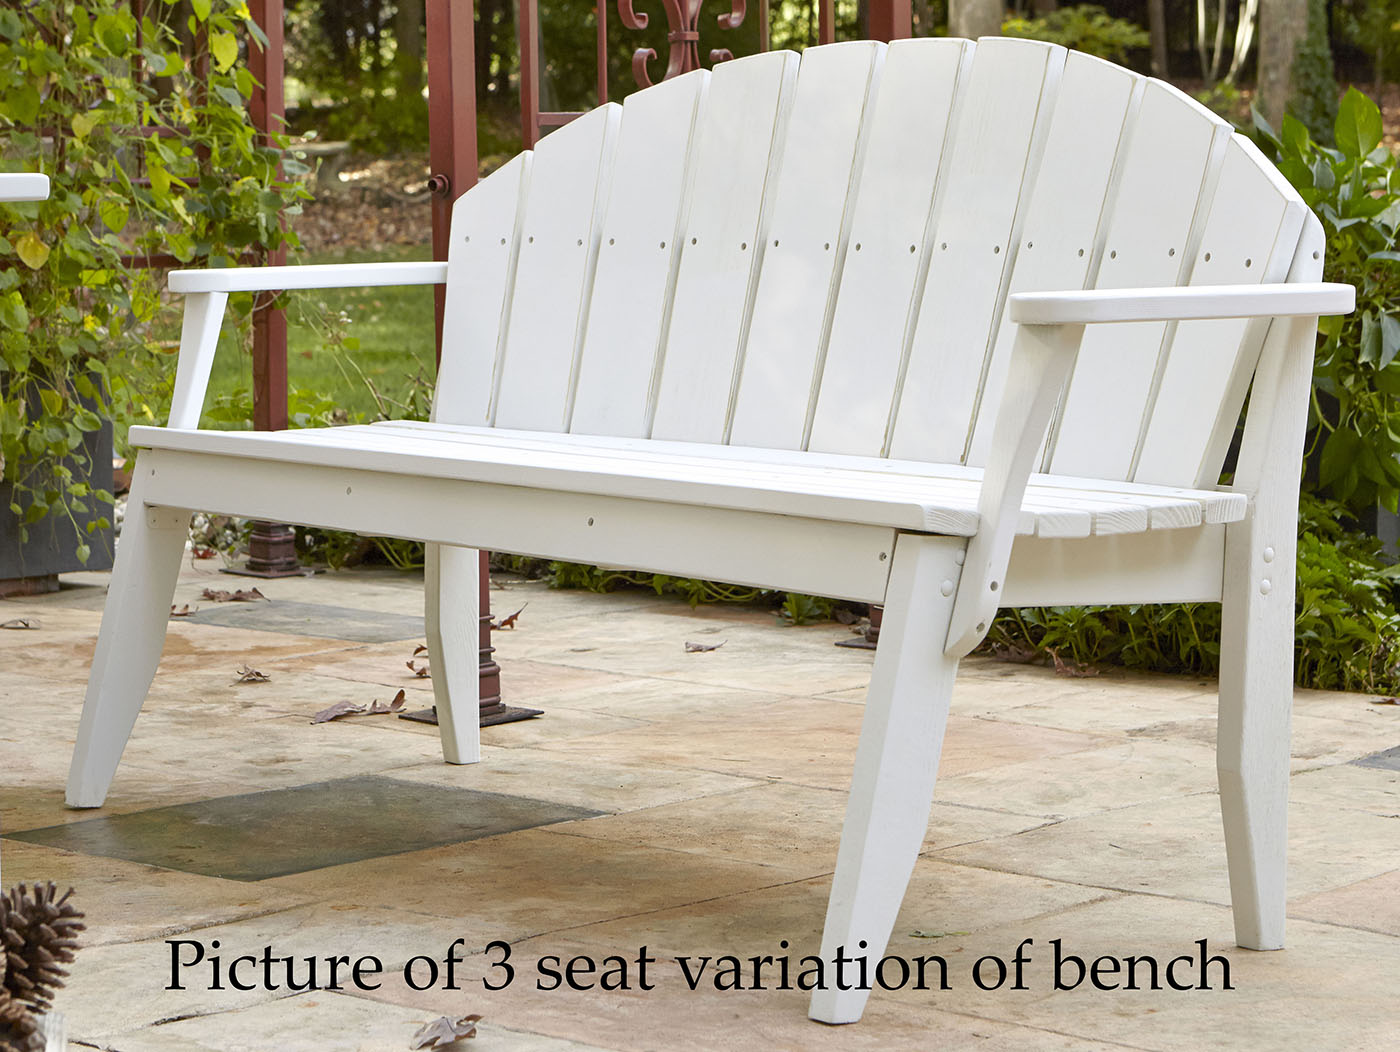 Design Chair Plaza Seat Outdoor Bench Product Photo